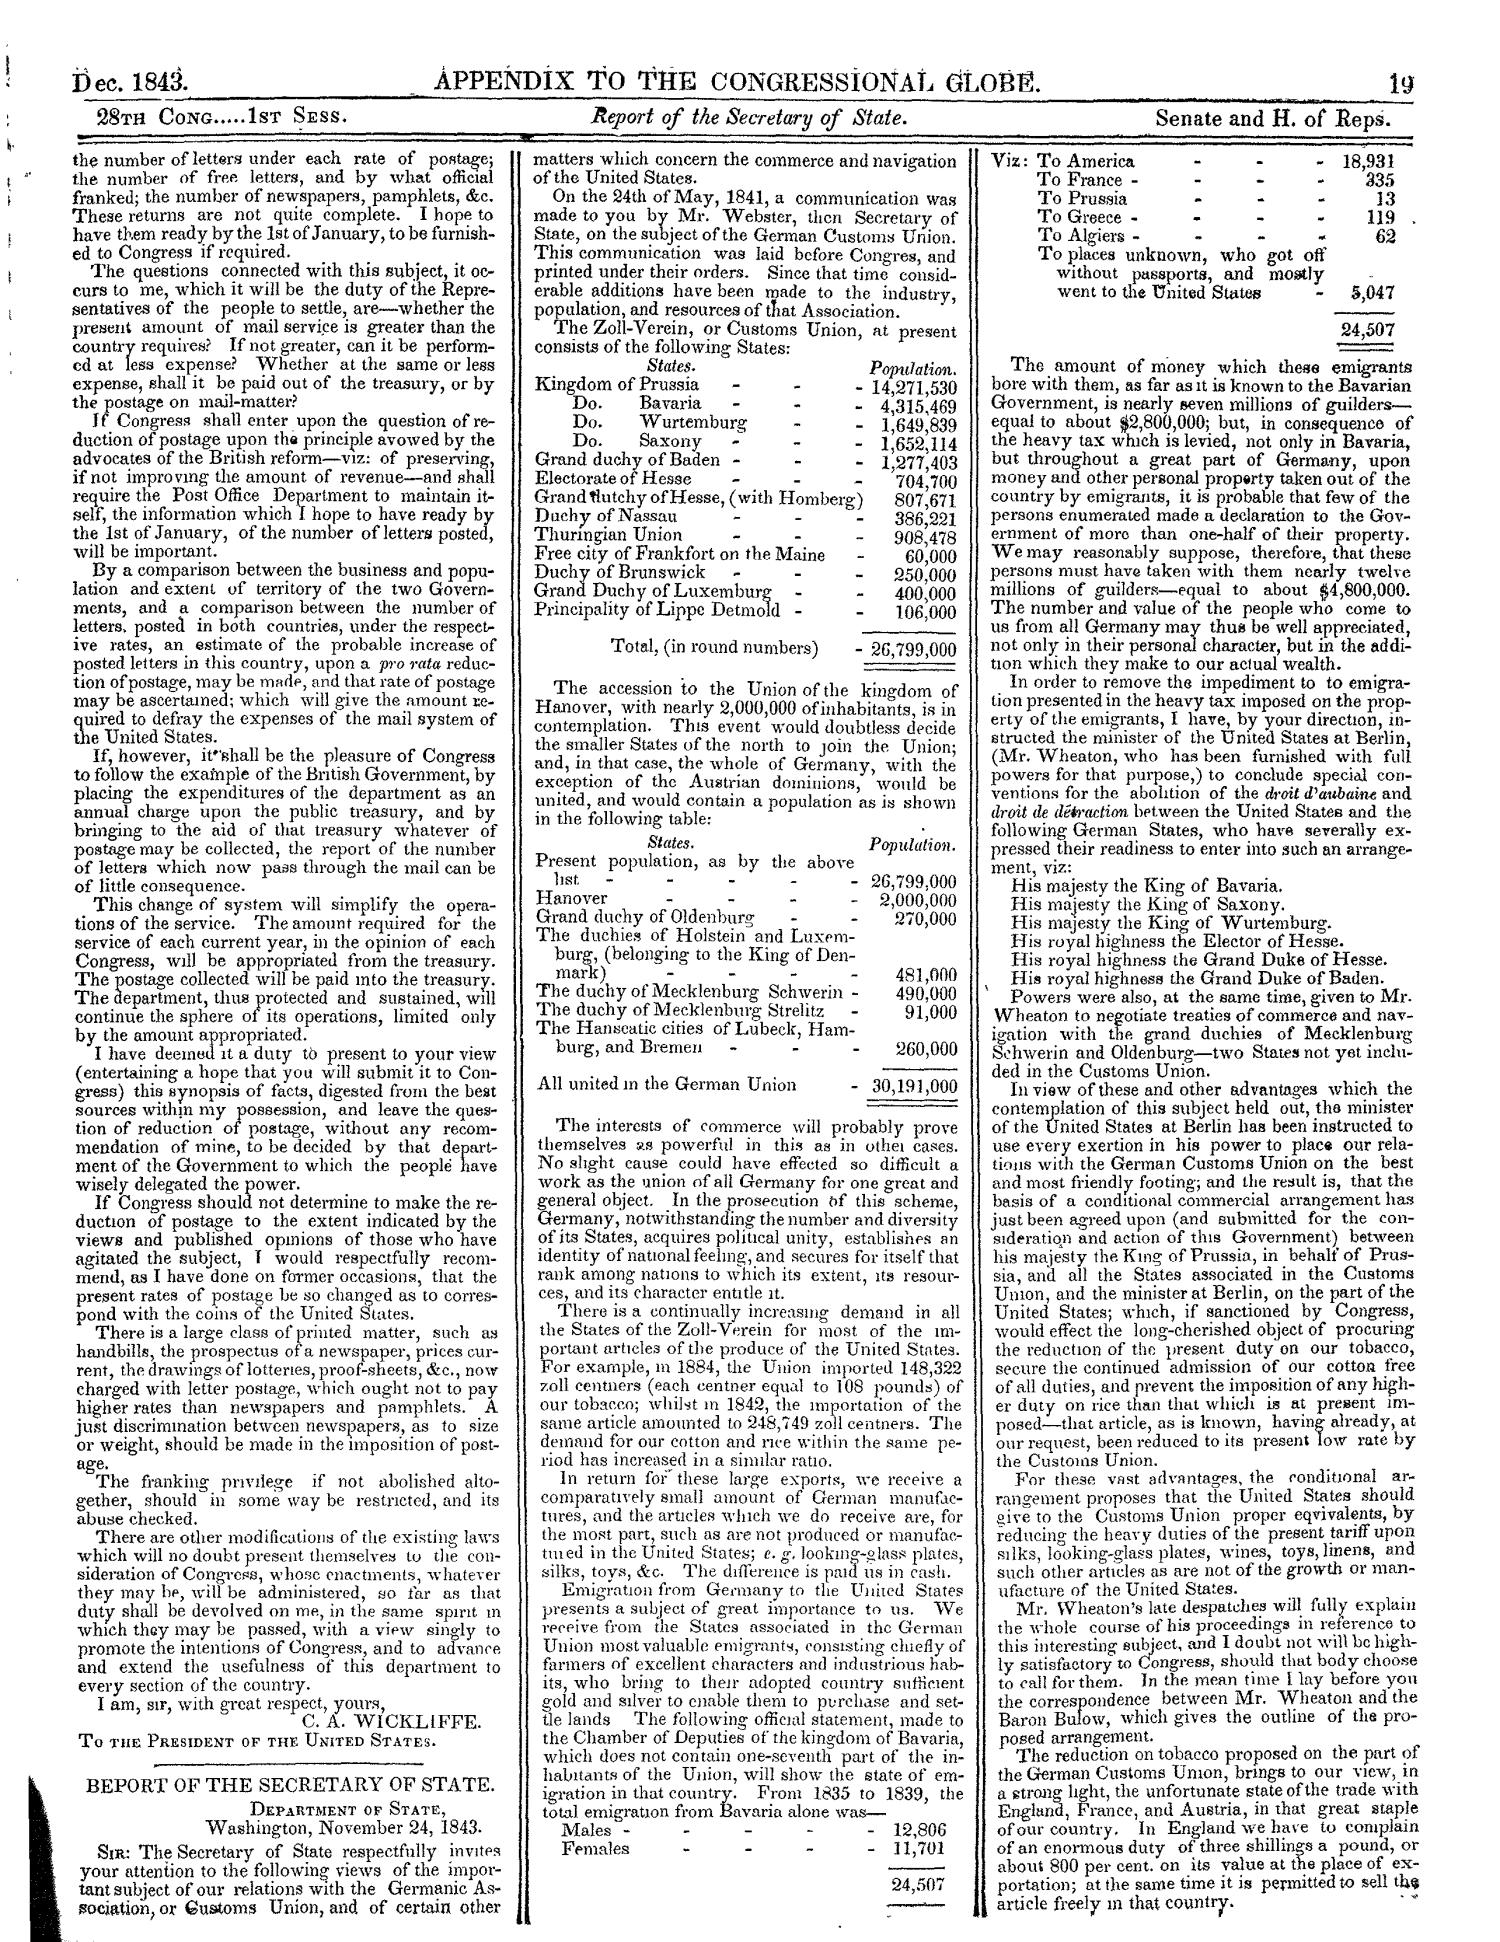 The Congressional Globe, Volume 13, Part 2: Twenty-Eighth Congress, First Session                                                                                                      19